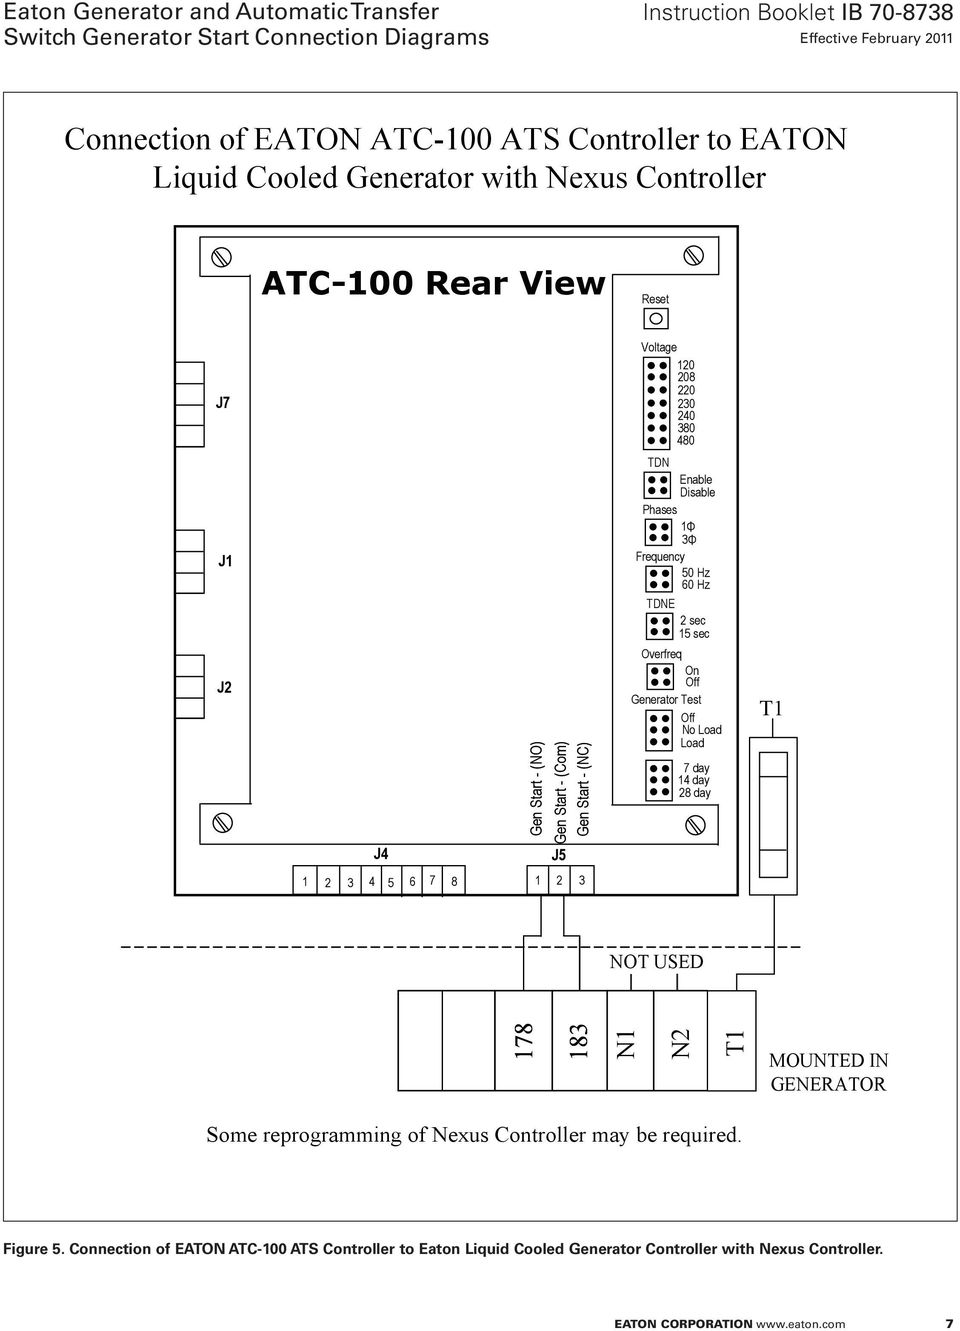 eaton transfer switch wiring diagram facbooik com Automatic Transfer Switches For Generators Wiring Diagram eaton transfer switch wiring diagram facbooik automatic transfer switches for generators wiring diagram